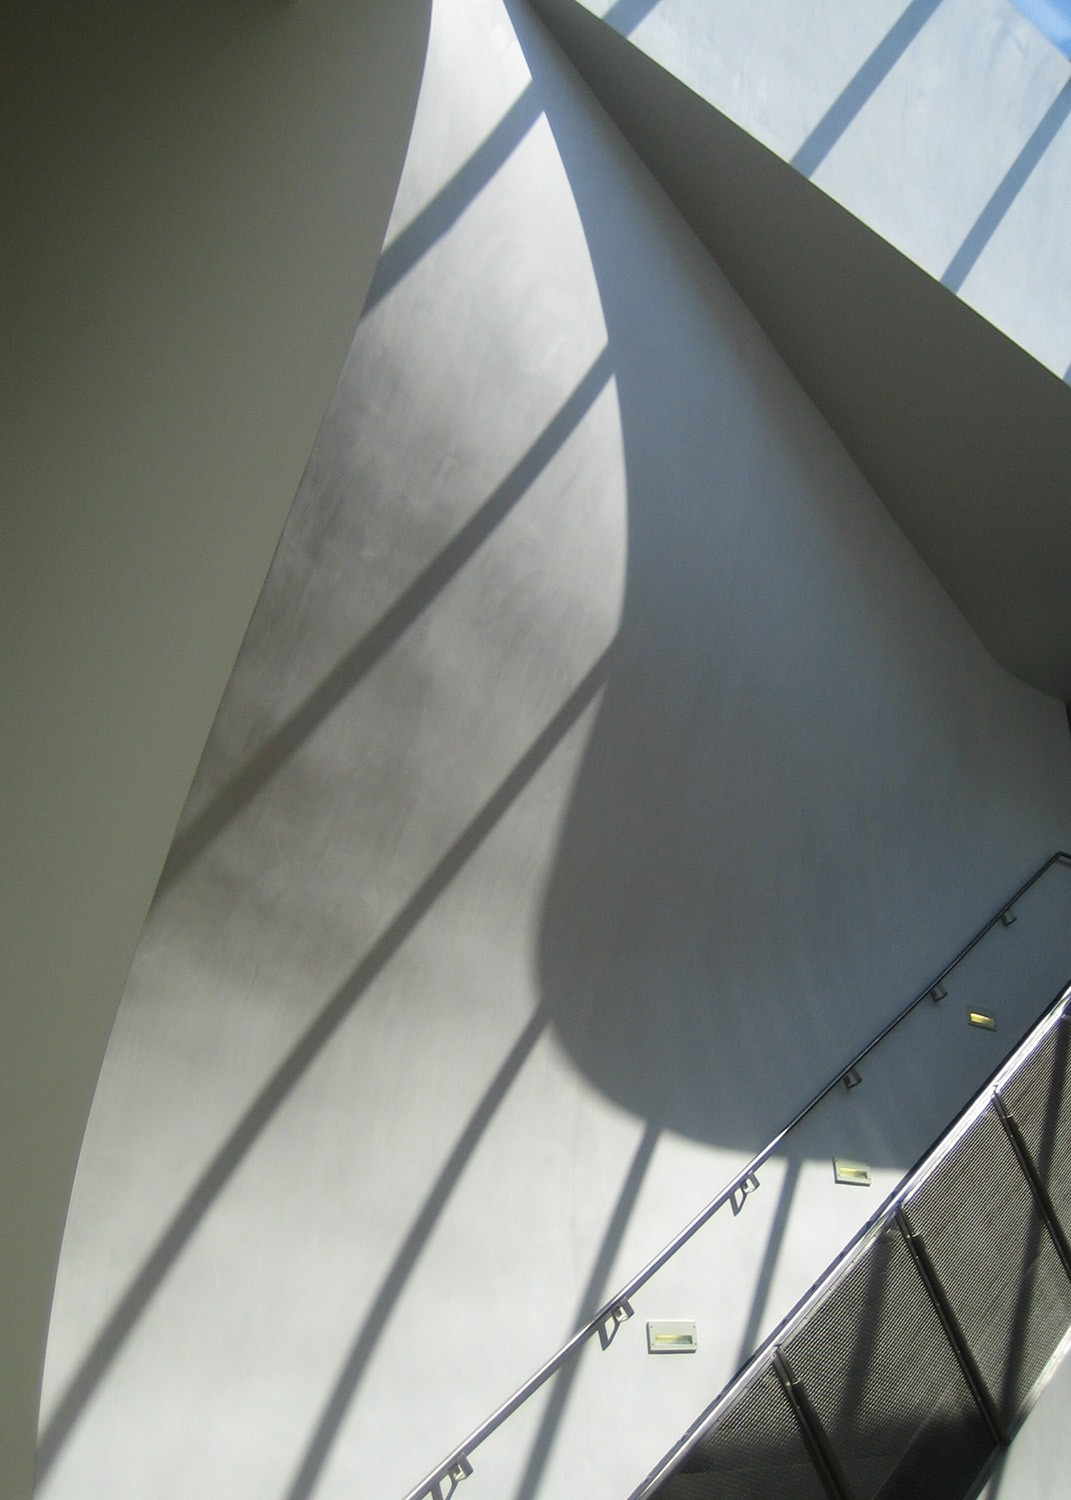 https://s3.us-east-2.amazonaws.com/steven-holl/uploads/projects/project-images/StevenHollArchitects_InteriorStairDetail_WV.jpg